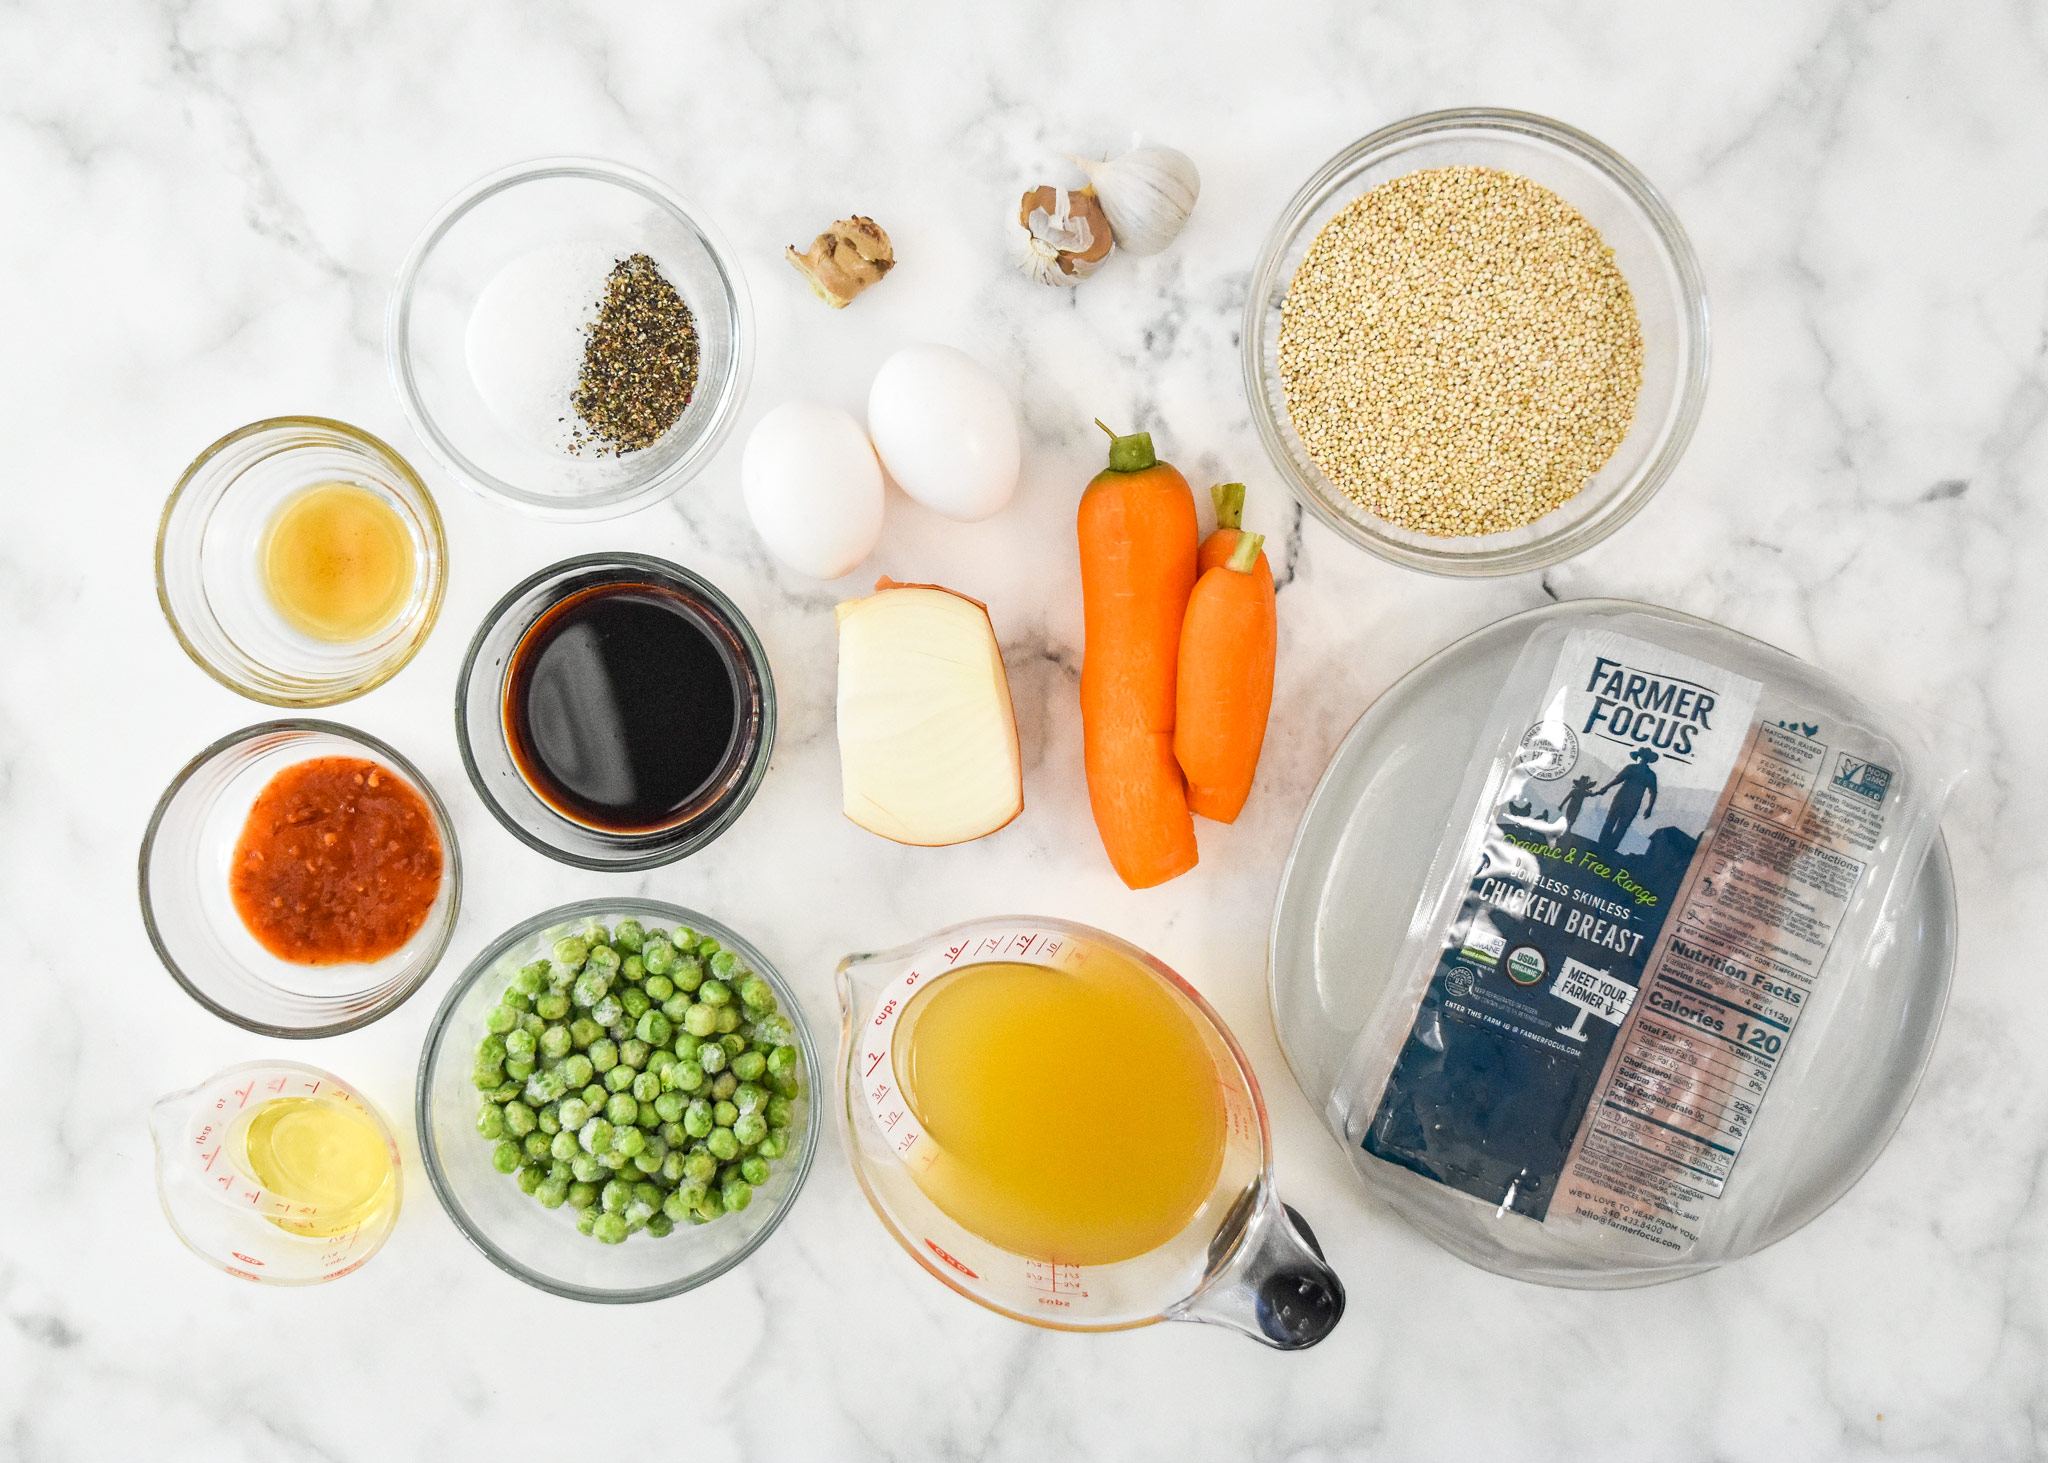 ingredients in the meal prep chicken quinoa fried rice bowls before cooking.